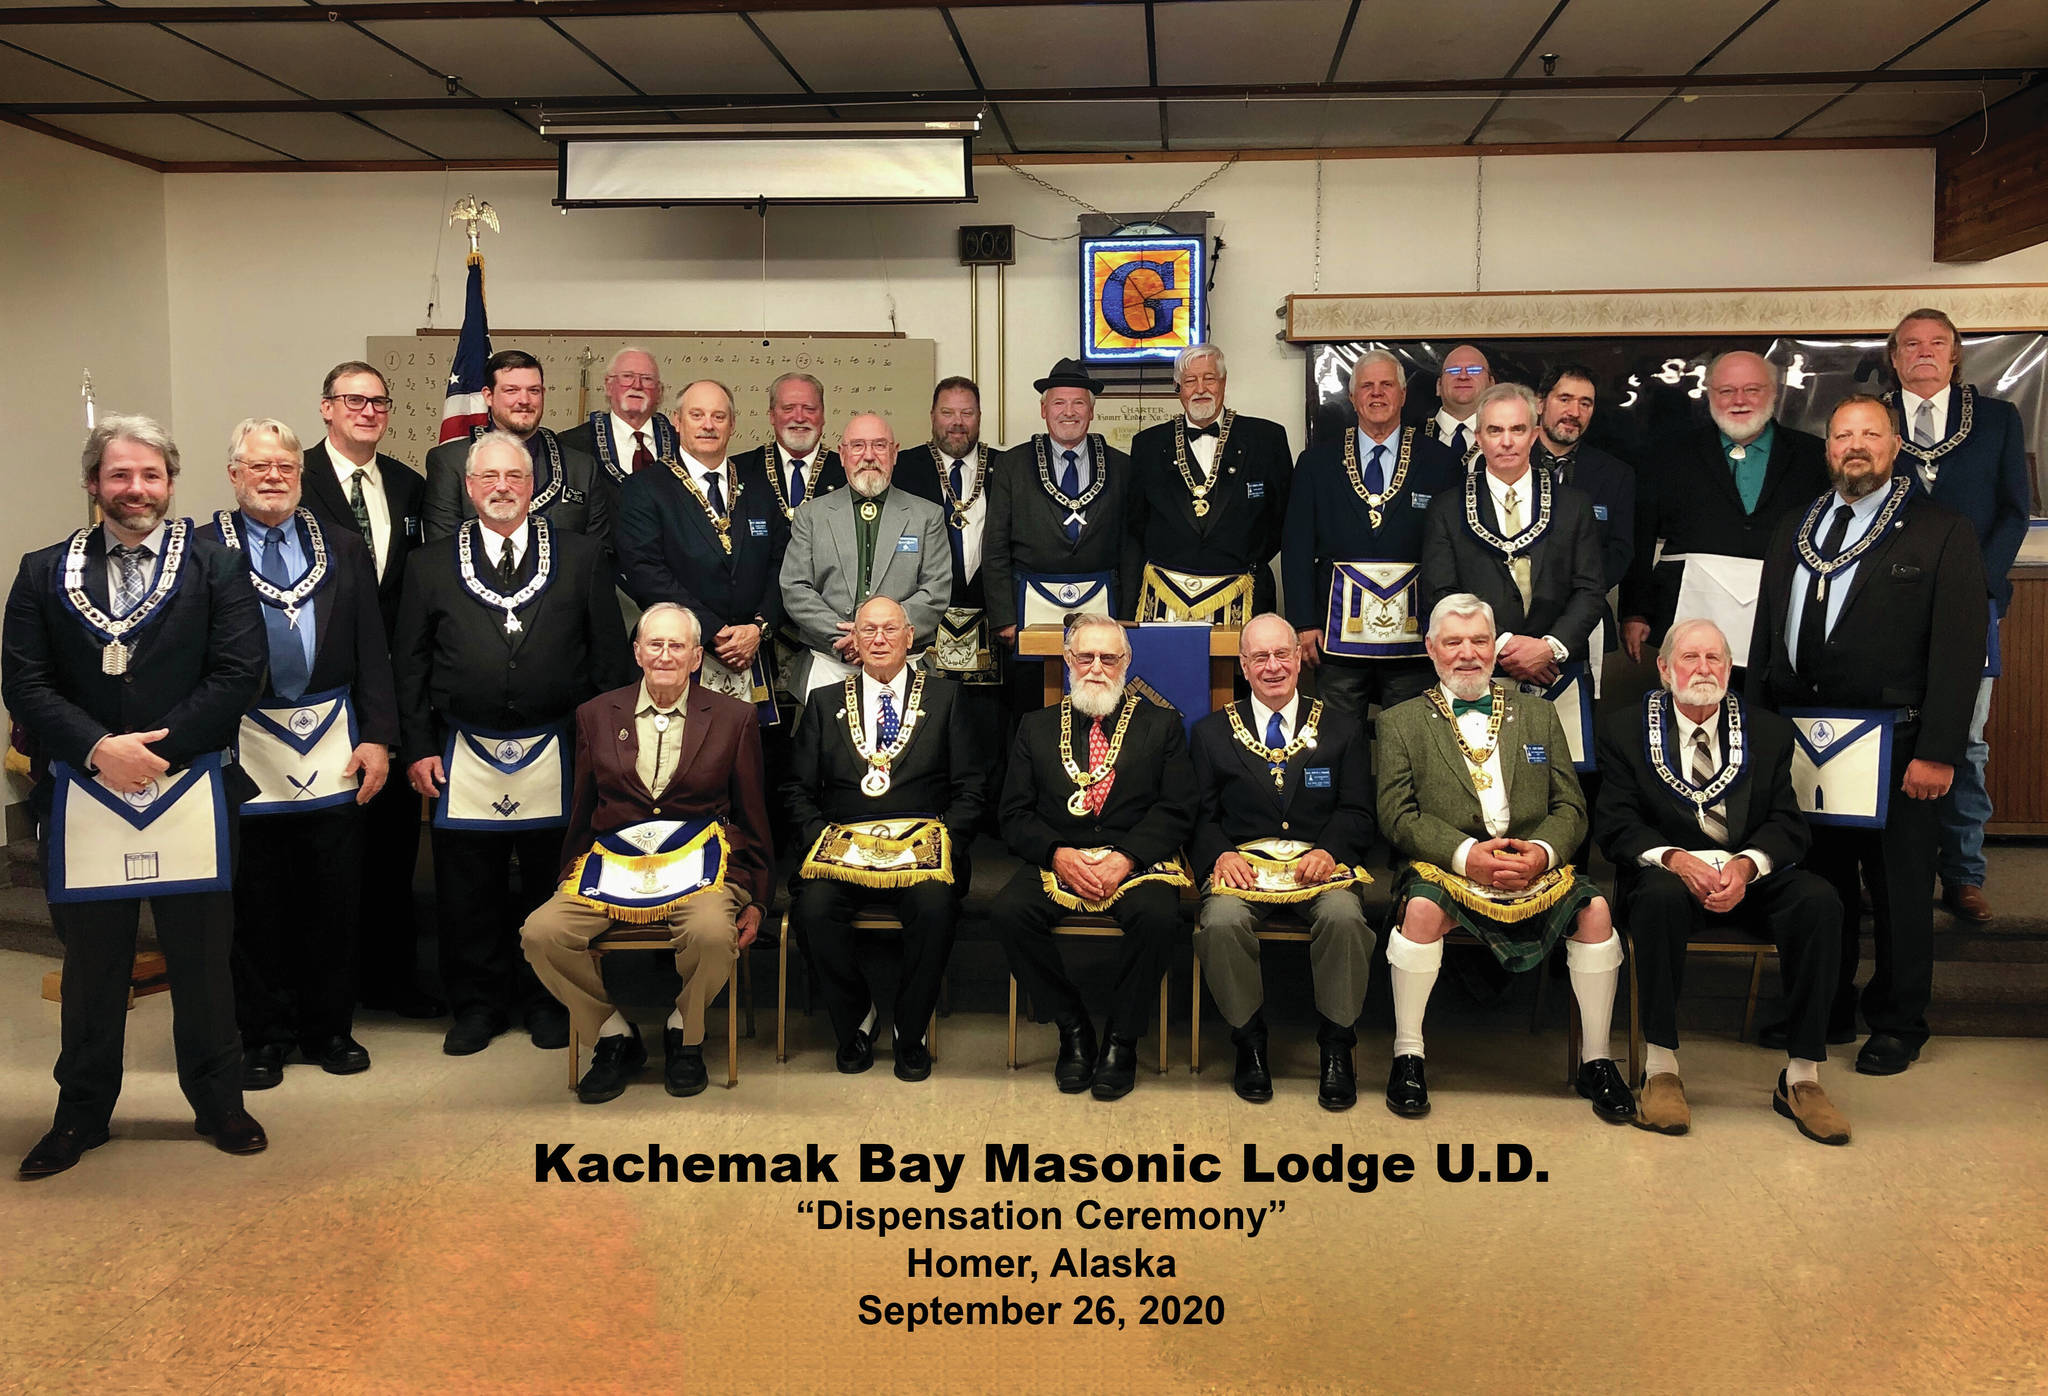 Members of the Kachemak Bay Masonic Lodge U.D. (Under Dispensation) and other Alaska Masons pose for a photo at a dispensation ceremony on Sept. 26, 2020, at the Homer Elks Lodge in Homer, Alaska. (Photo courtesy of Kachemak Bay Masonic Lodge U.D.)